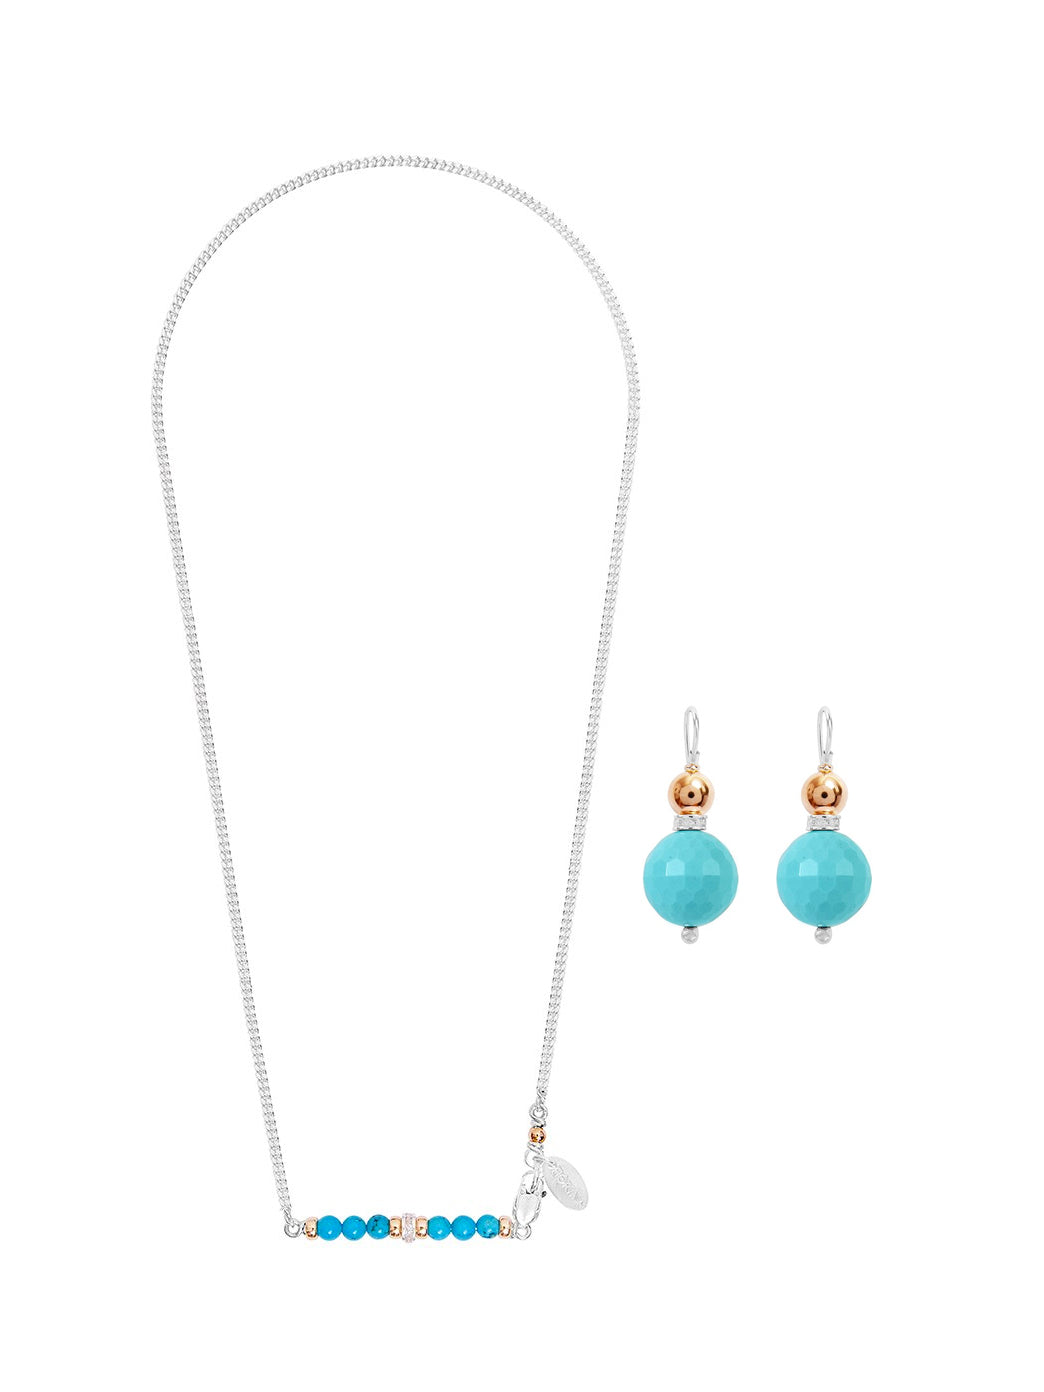 Fiorina Jewellery Romantic Set Romance Necklace and Double Ball Earrings